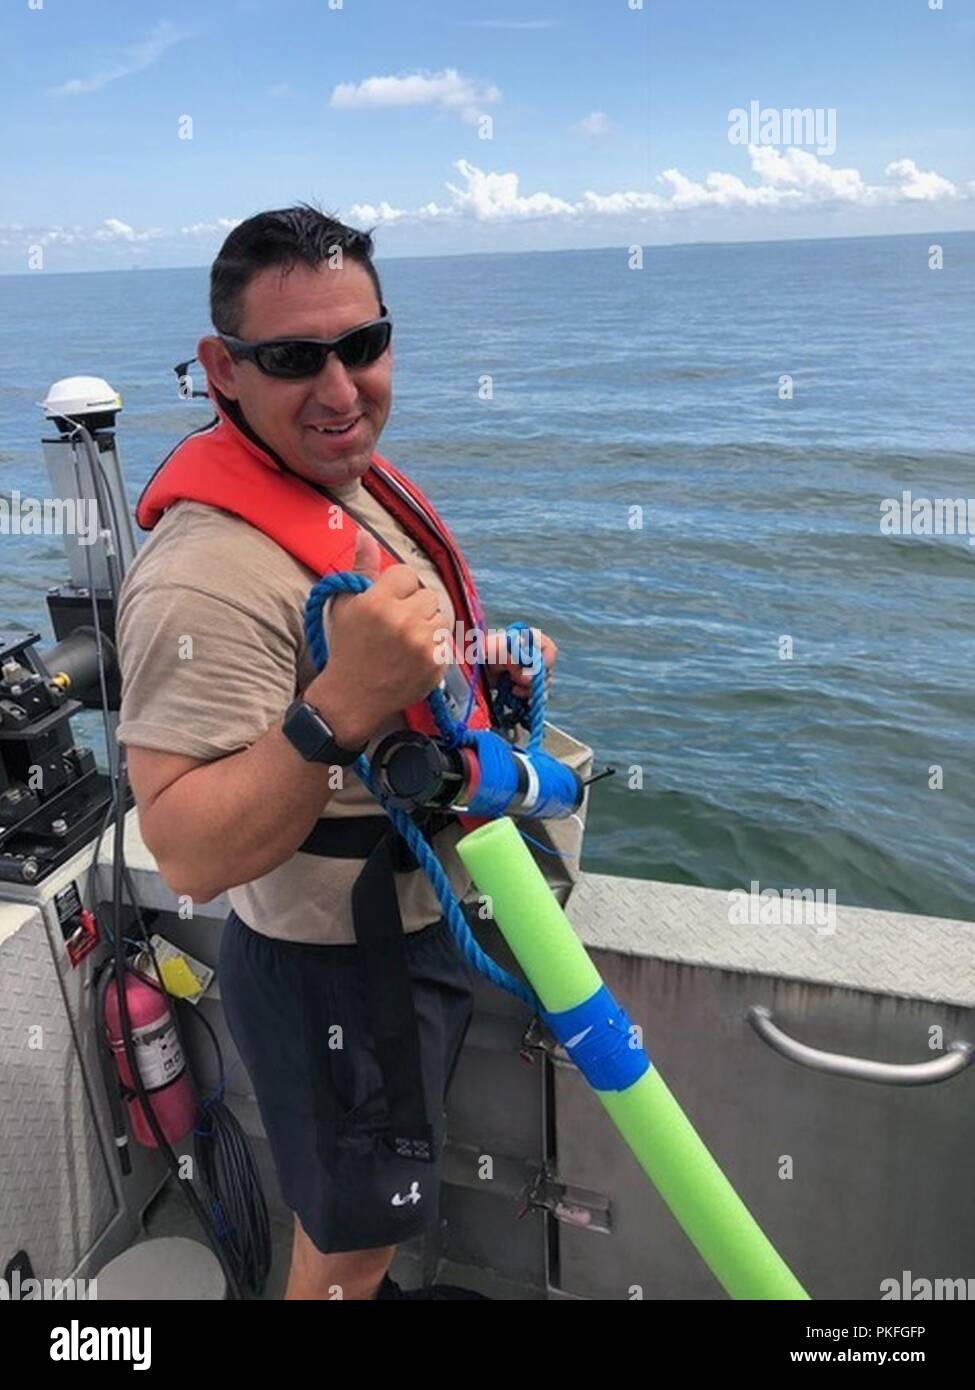 On Aug. 7, 2018, AGC Wesley Bell with Naval Oceanography Mine Warfare Center aboard NOAA's National Response Team-1 in Gulf of Mexico deploying a sonar reflector with an attached defense system sonar pinger that will be surveyed to determine ground truth. This exercise is part of the Gulf Coast portion of Naval Undersea Warfare Center's Advanced Naval Technology Exercise. - Stock Image